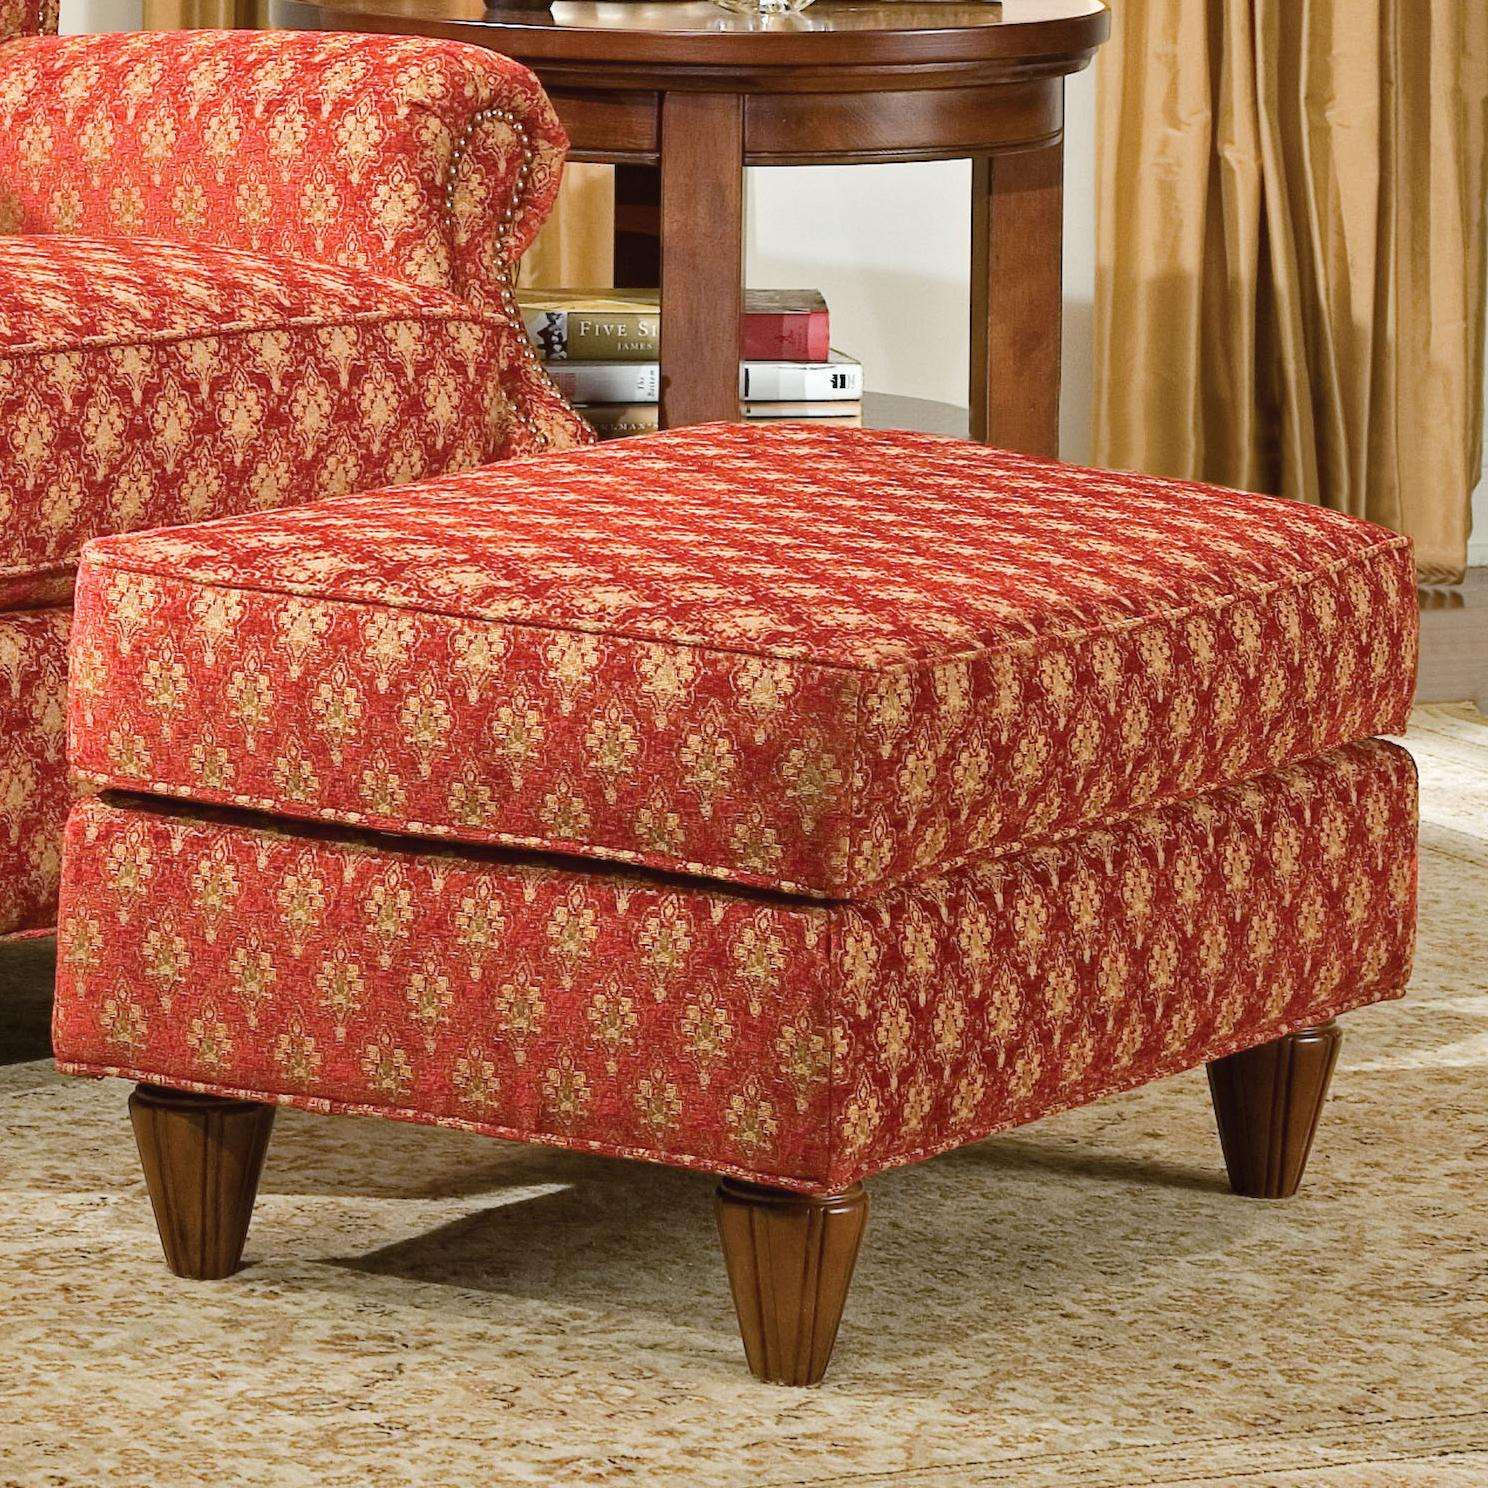 1403 Ottoman by Fairfield at Story & Lee Furniture